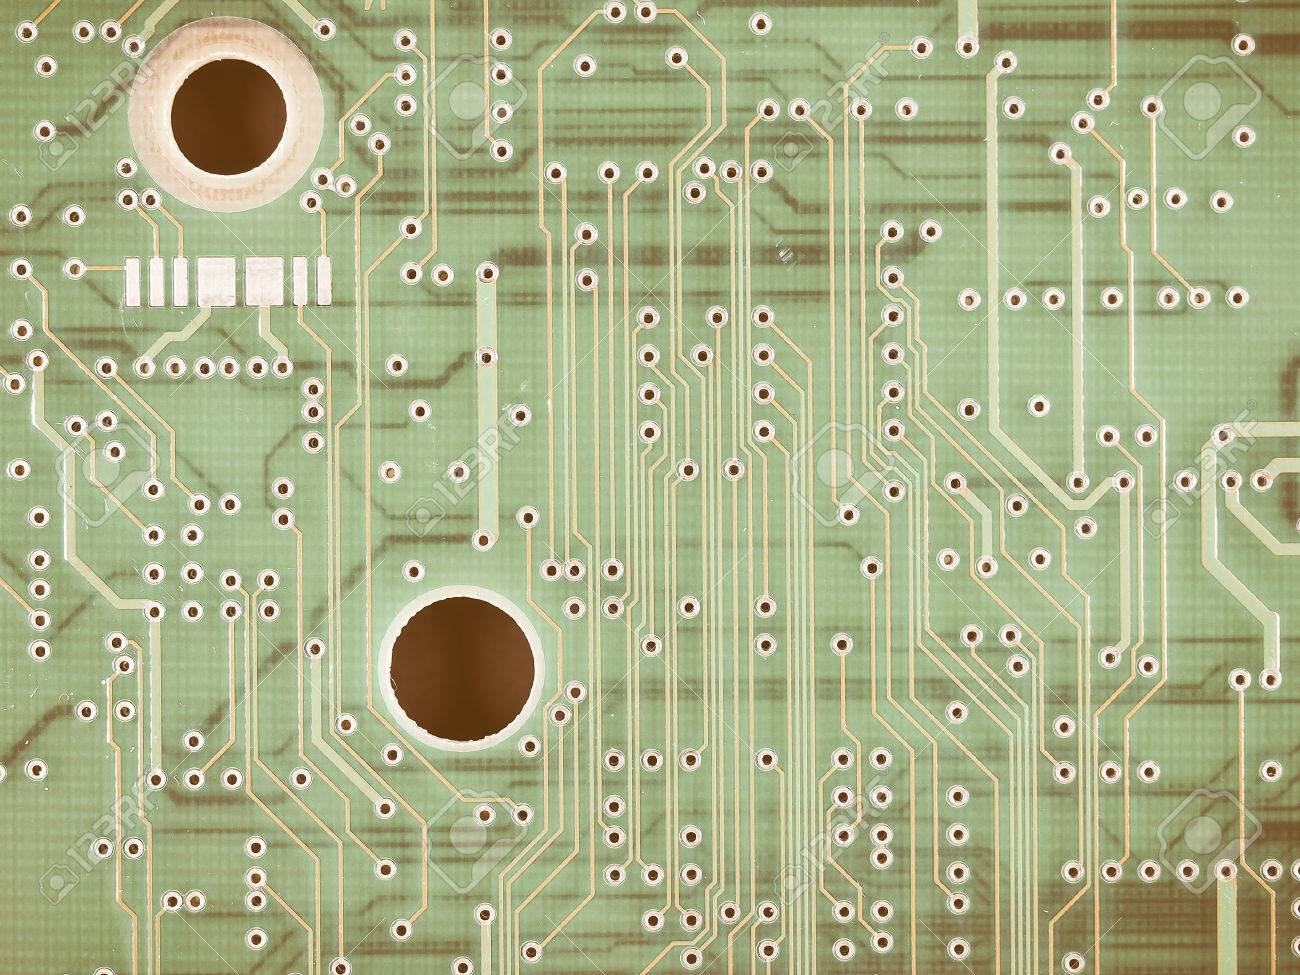 Detail Of An Electronic Printed Circuit Board Vintage Stock Photo A Royalty Free Image 51430697